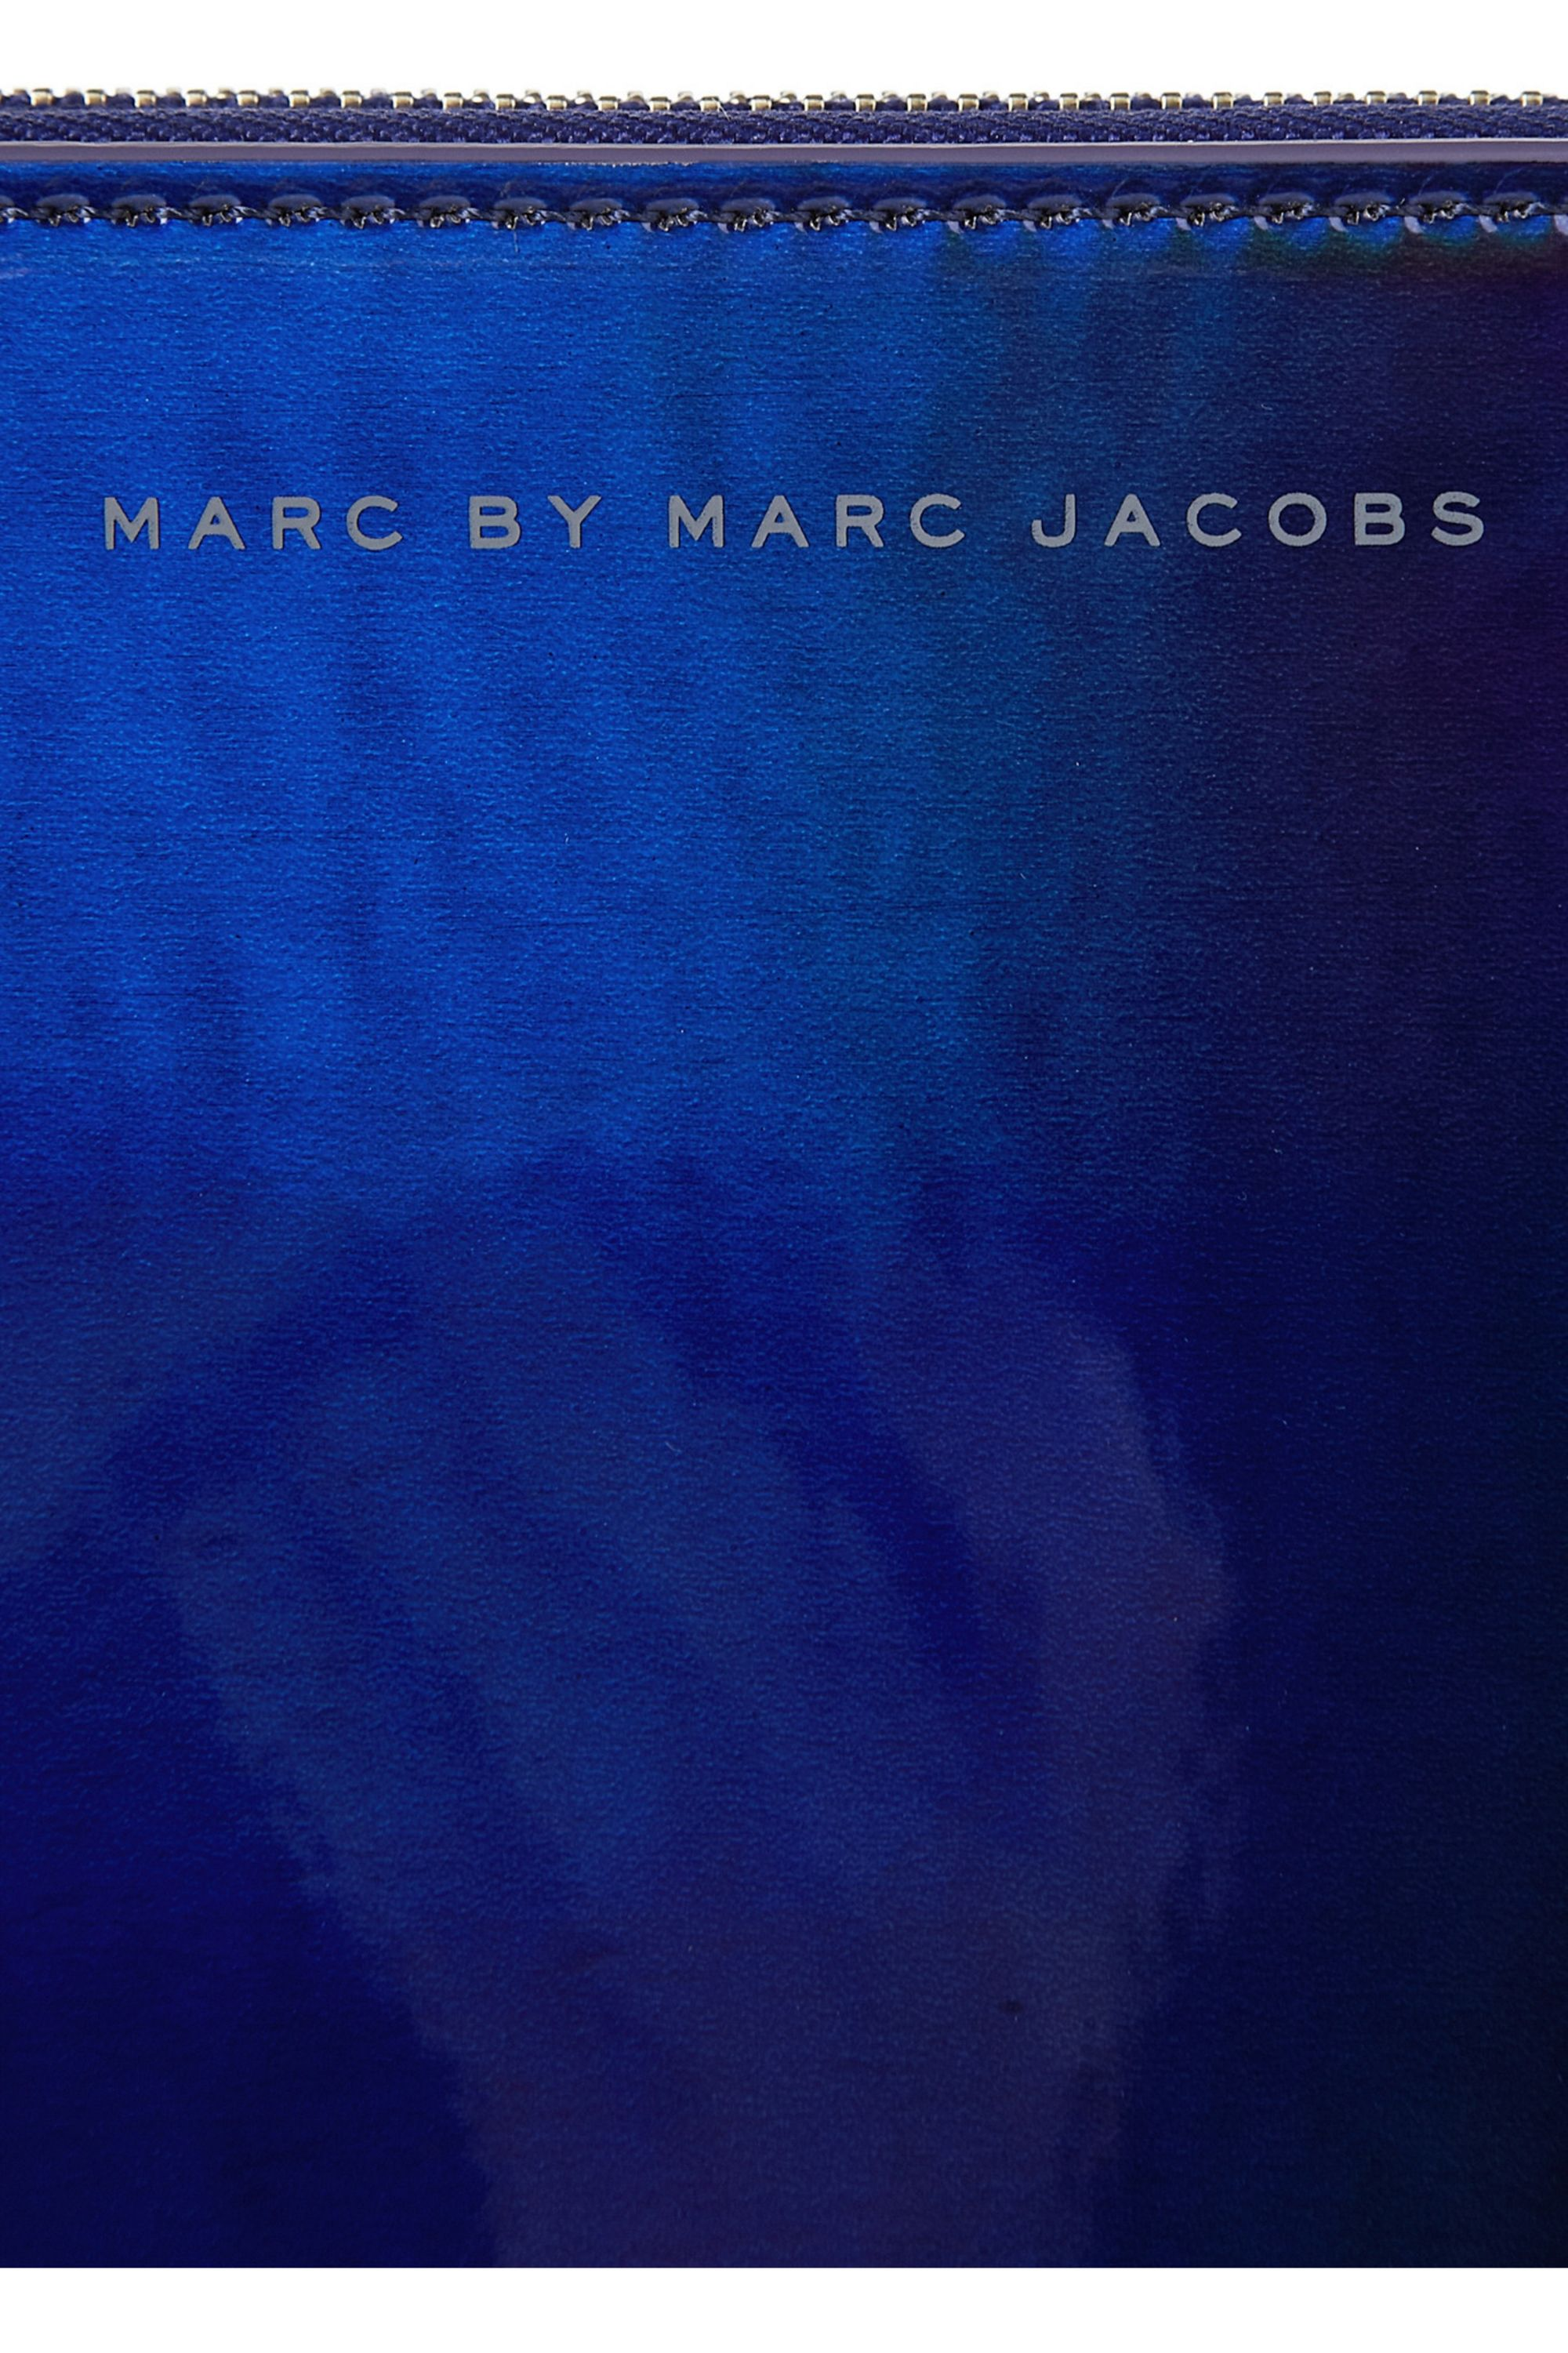 Marc by Marc Jacobs Techno holographic vinyl iPad case